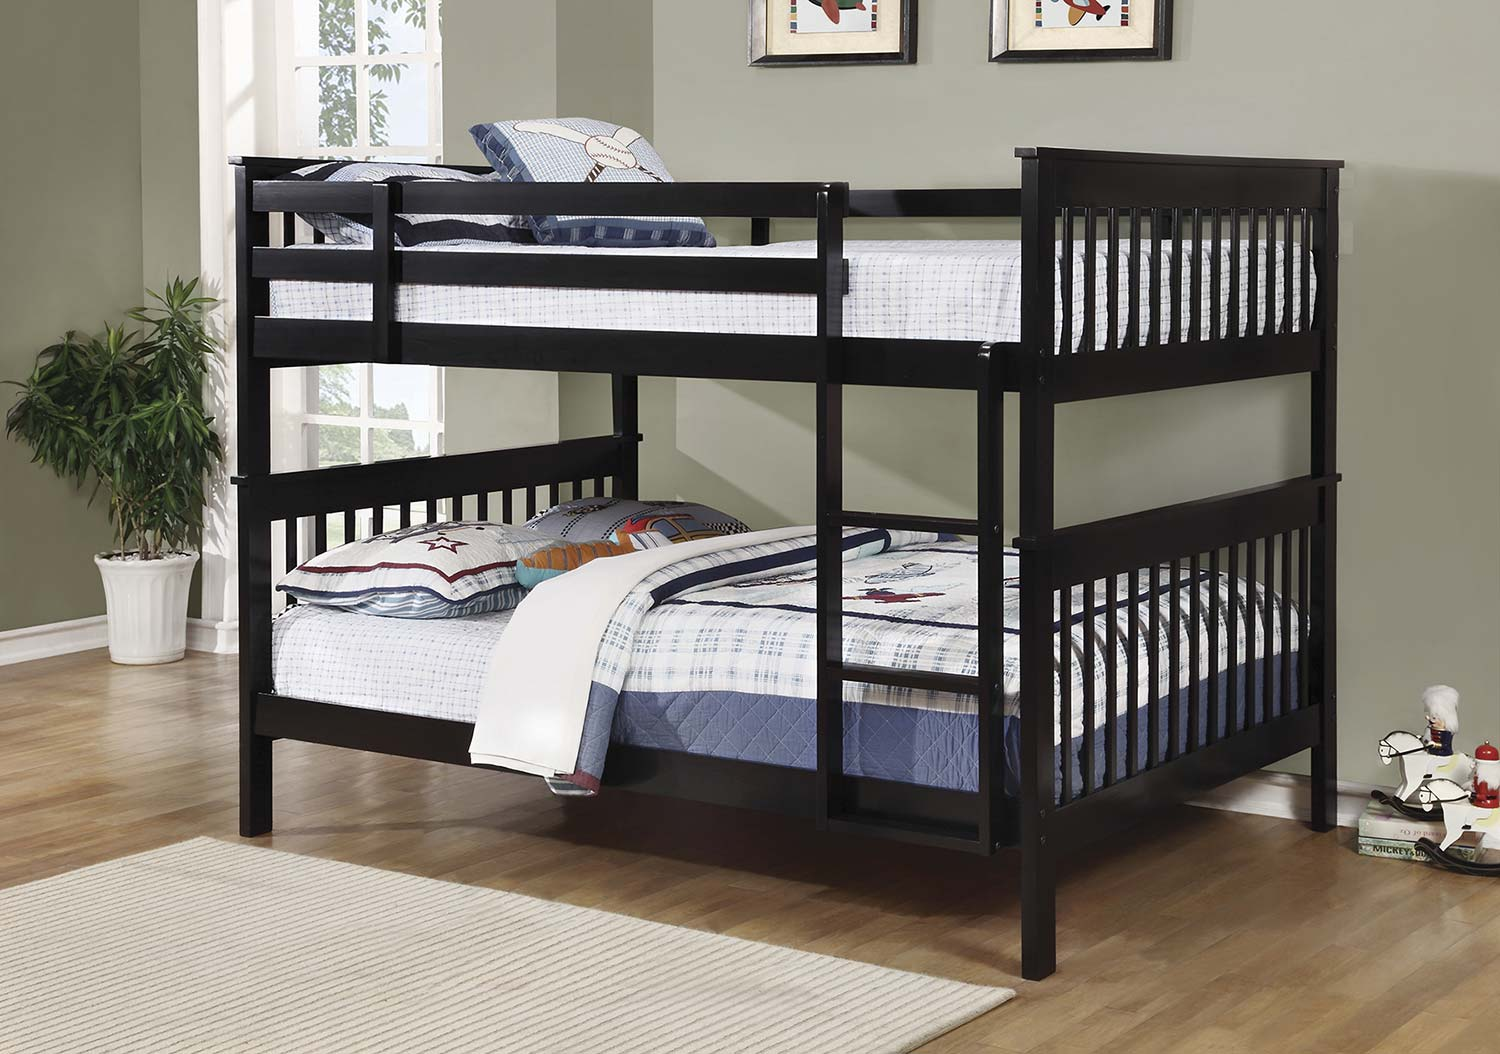 Coaster Chapman Full/Full Size Bunk Bed - Black